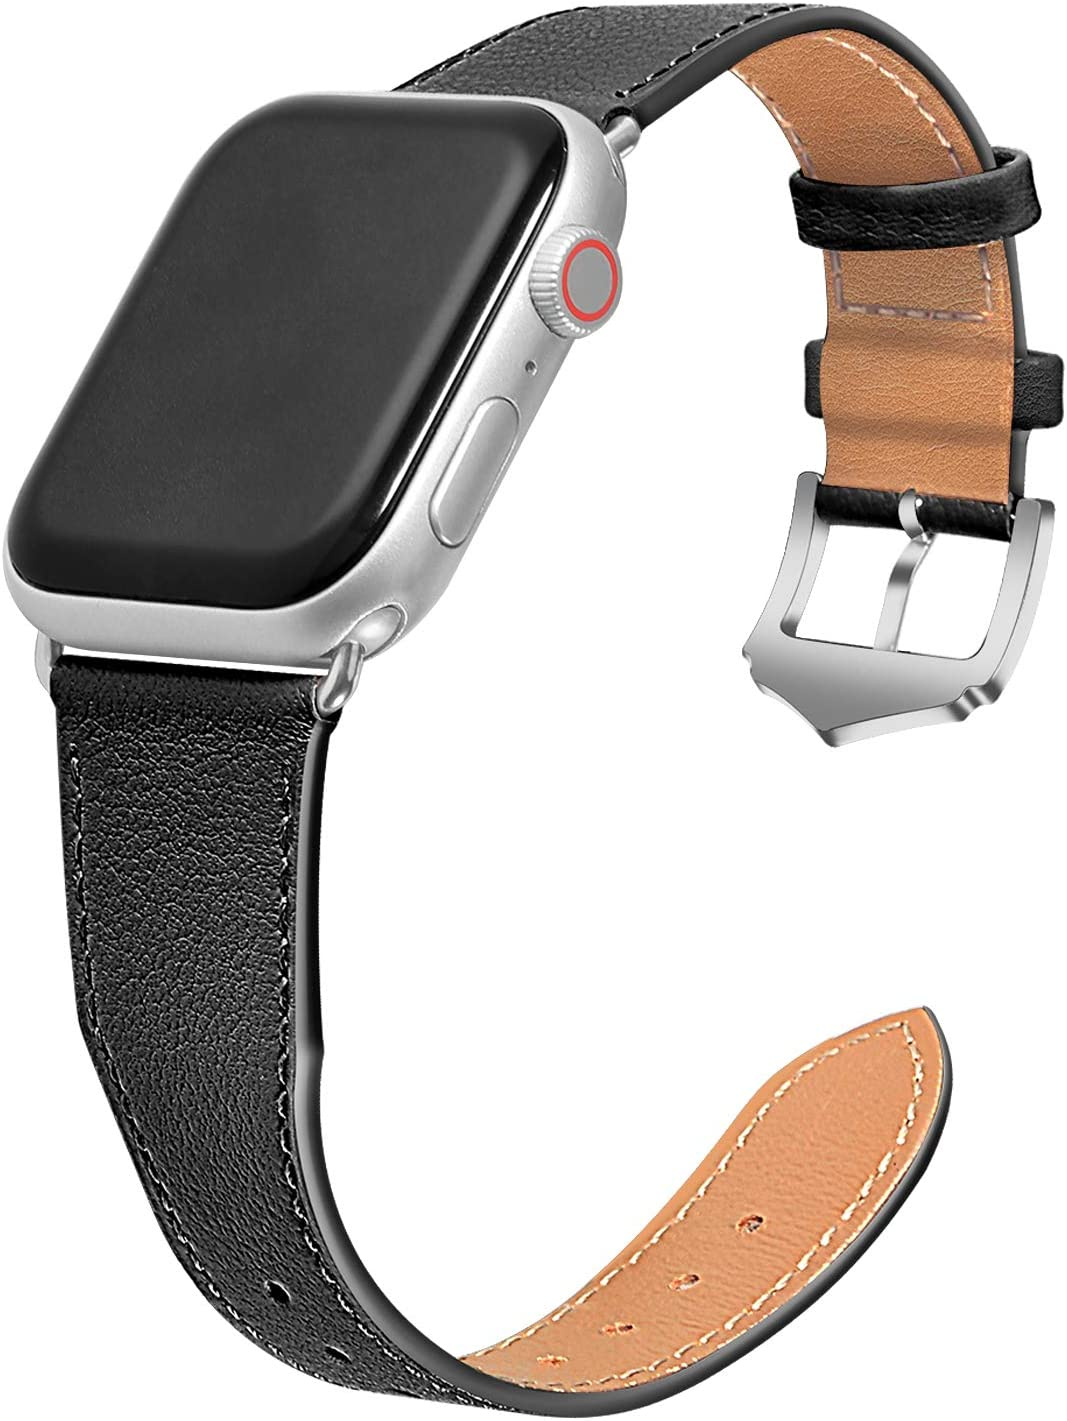 Genuine Leather Watch Bands Compatible with Apple Watch Bands 38mm 40mm 42mm 44mm for Men Women Straps,Top Band Slim & Thin Replacement Wristband for iWatch Bands SE & Series 6/5/4/3/2/1